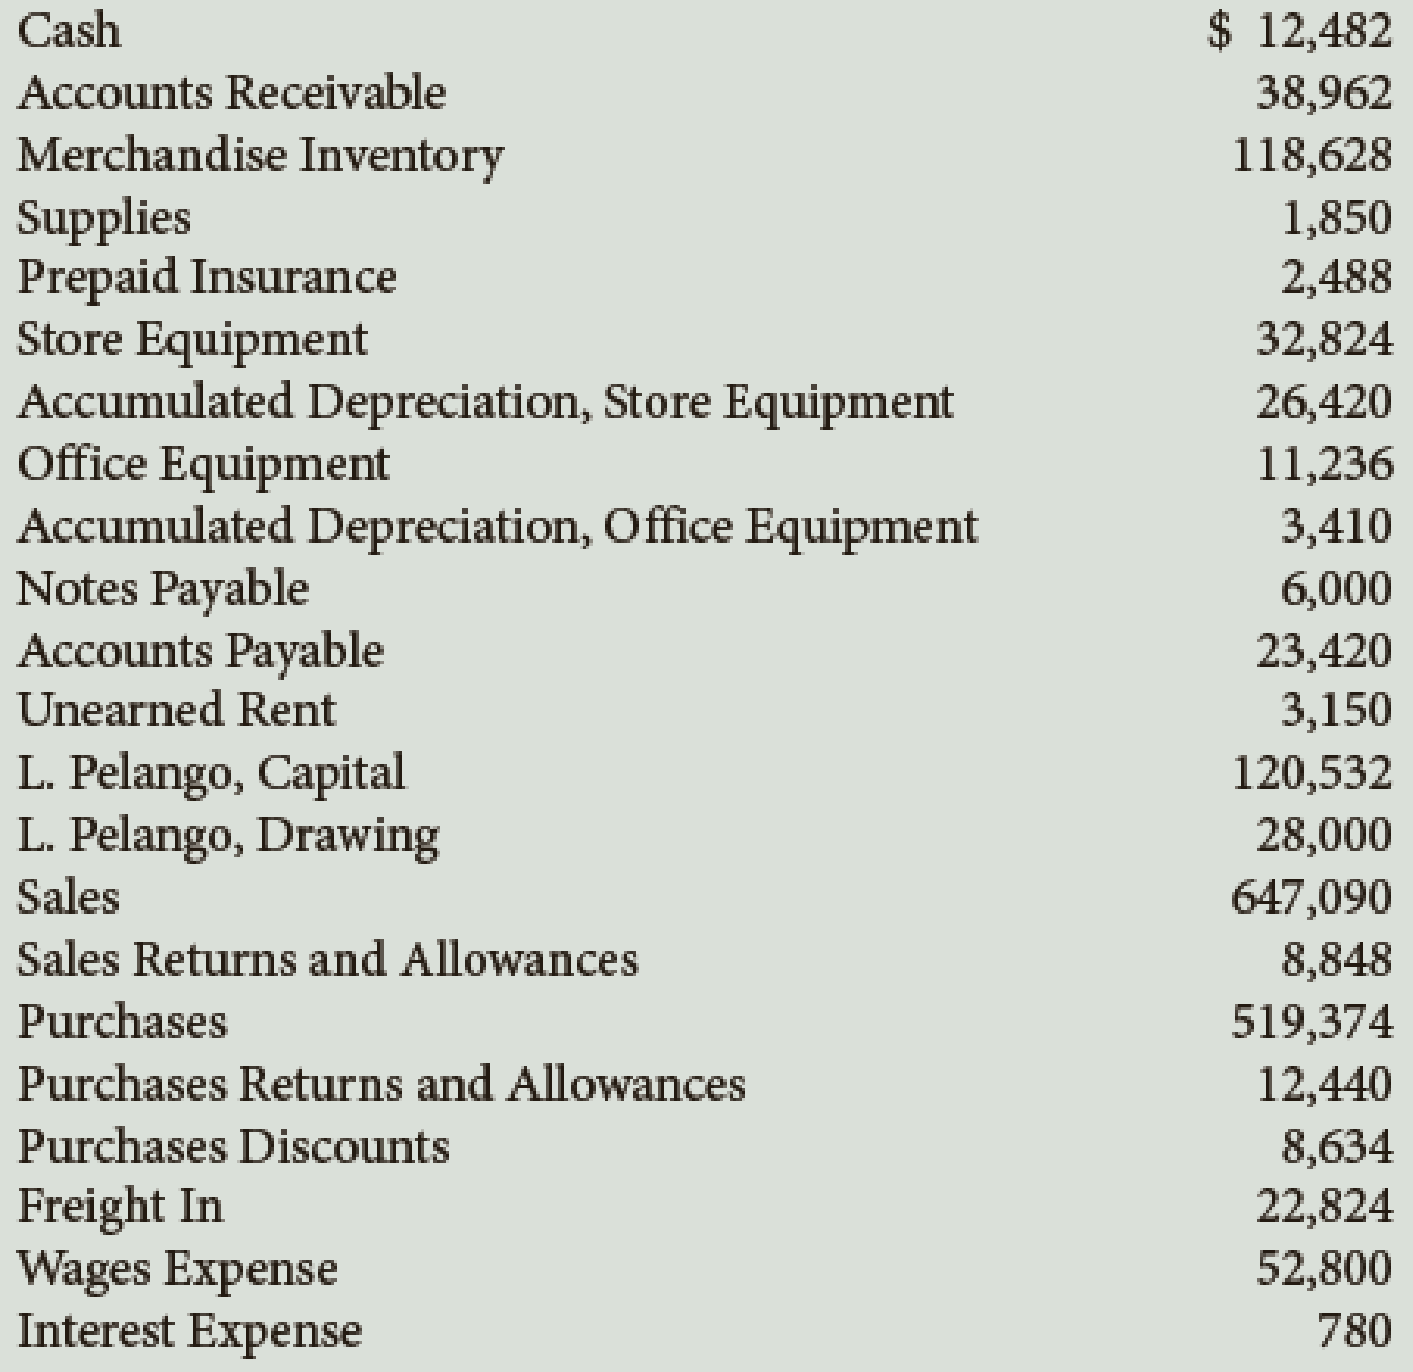 Chapter 11, Problem 2PB, The balances of the ledger accounts of Pelango Furniture as of December 31, the end of its fiscal